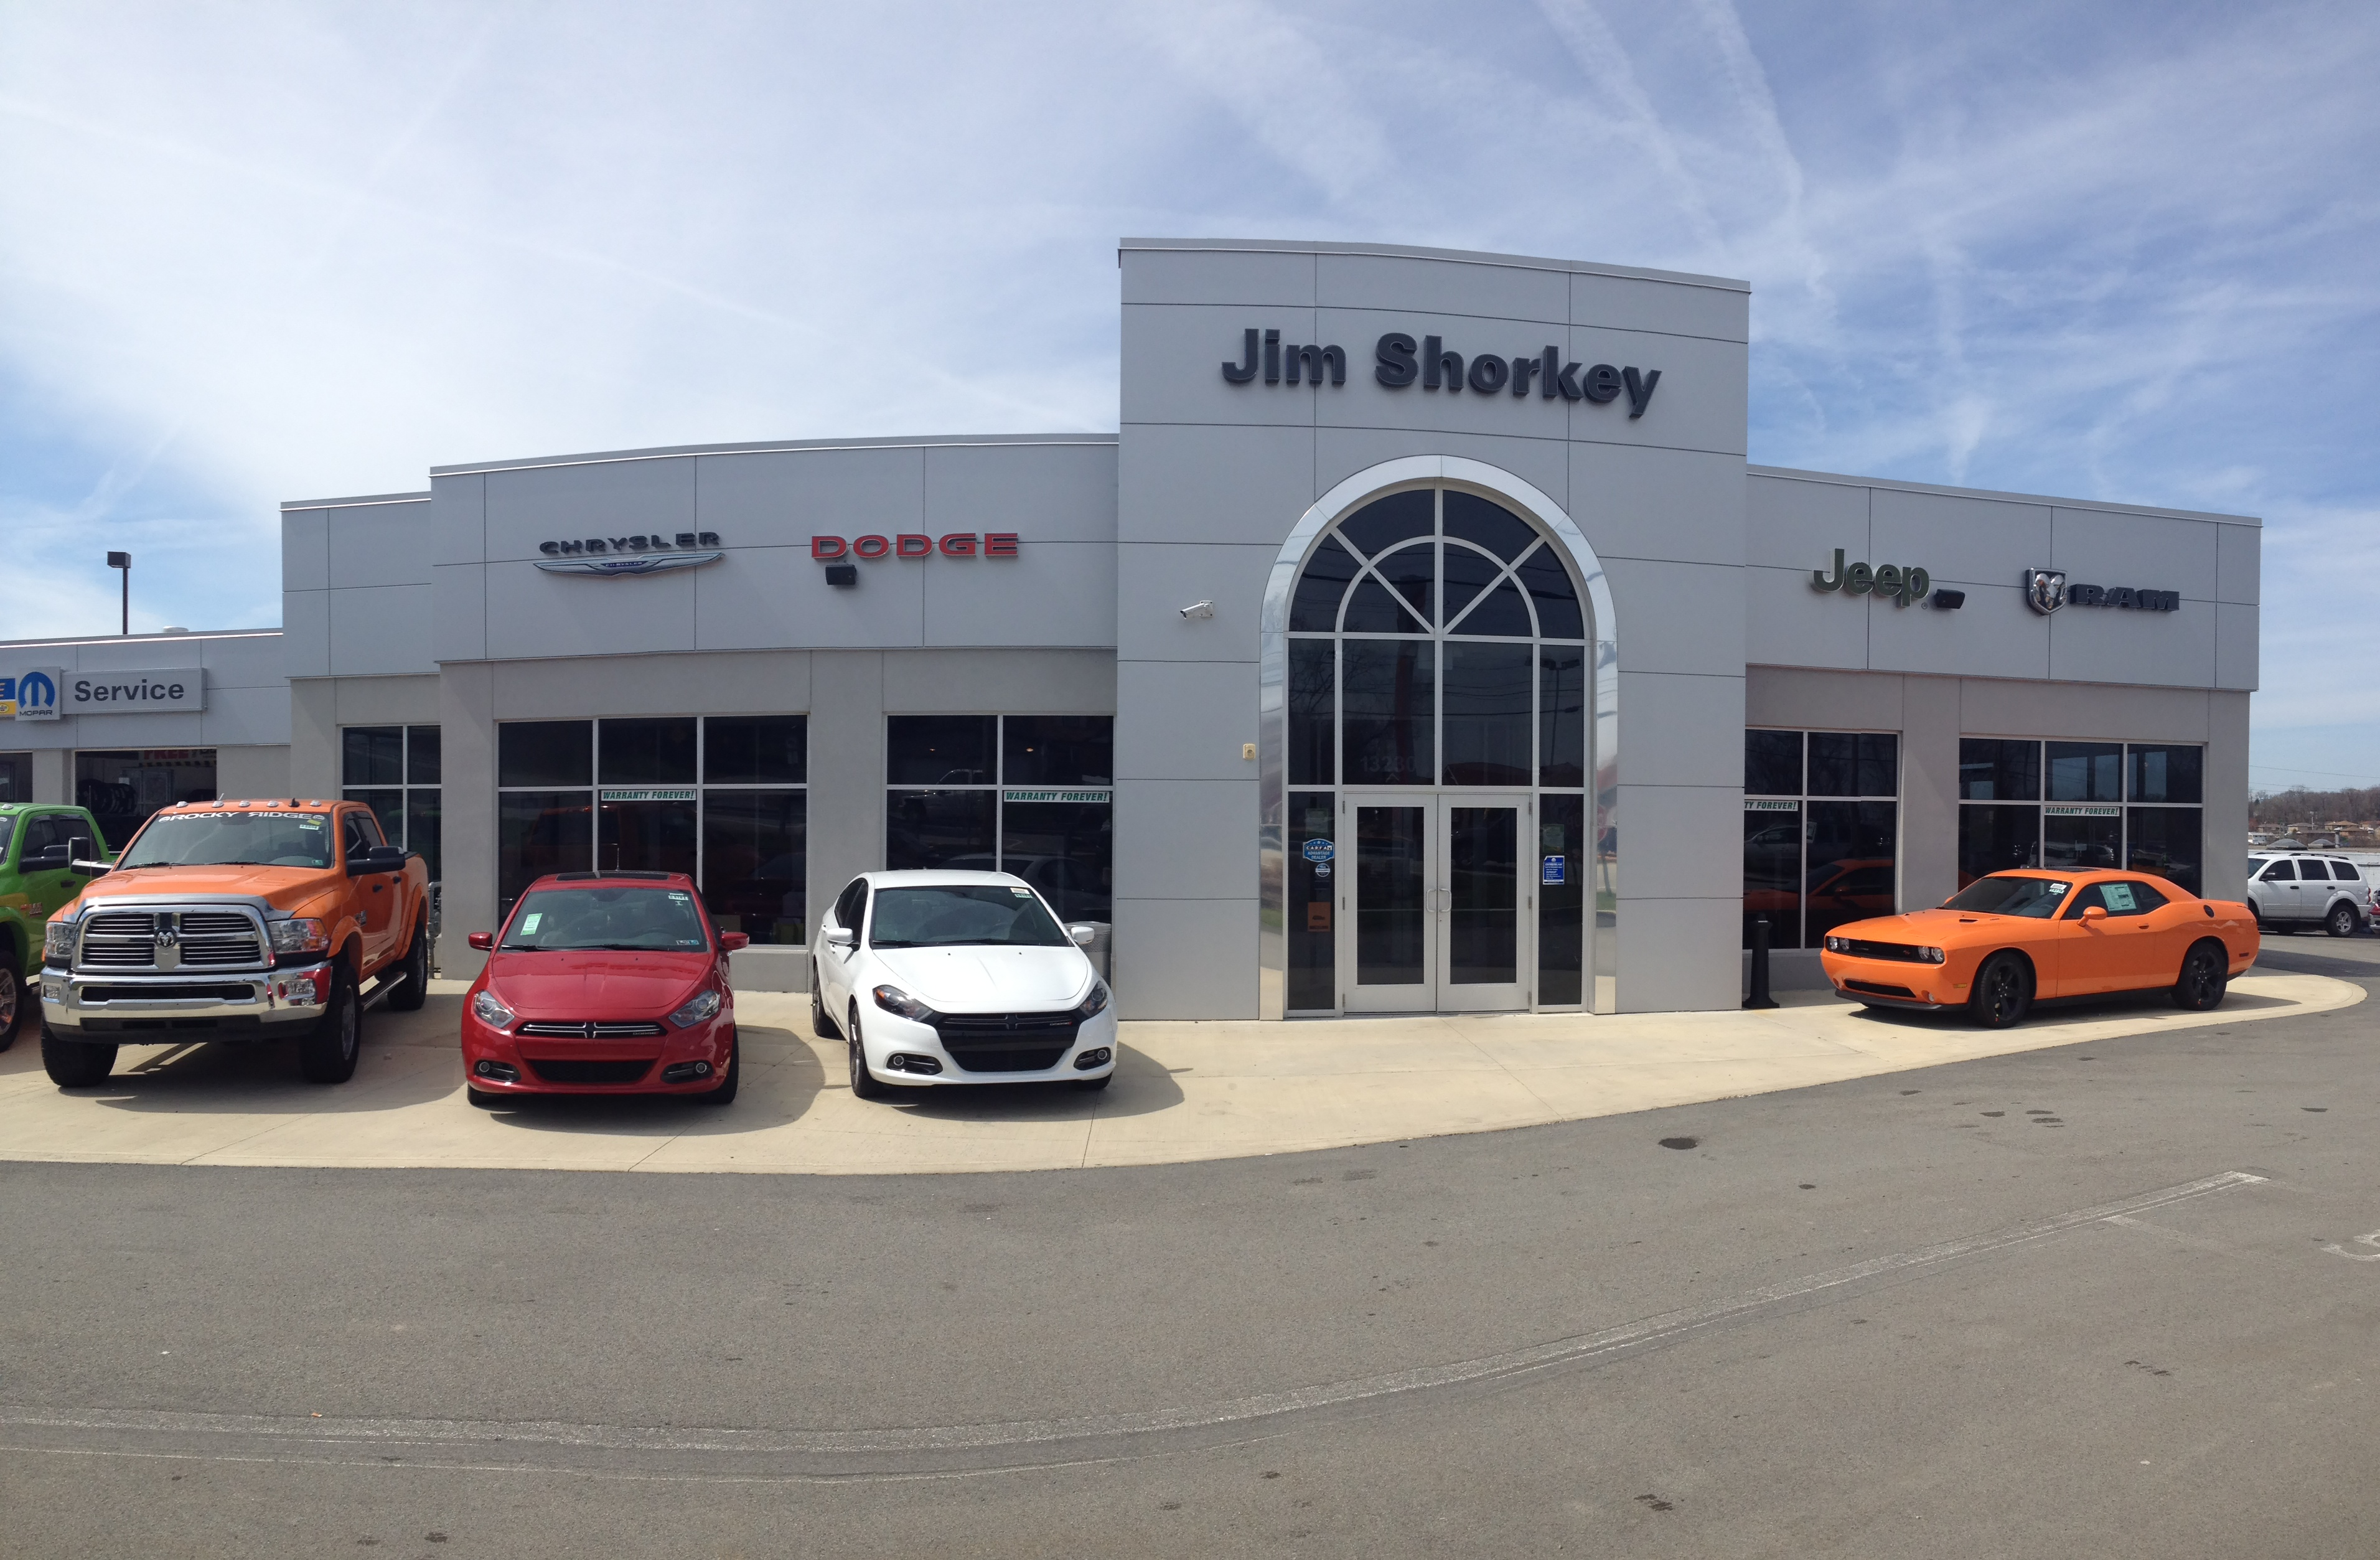 Jim Shorkey Chrysler Dodge Jp State Route 30 Irwin PA